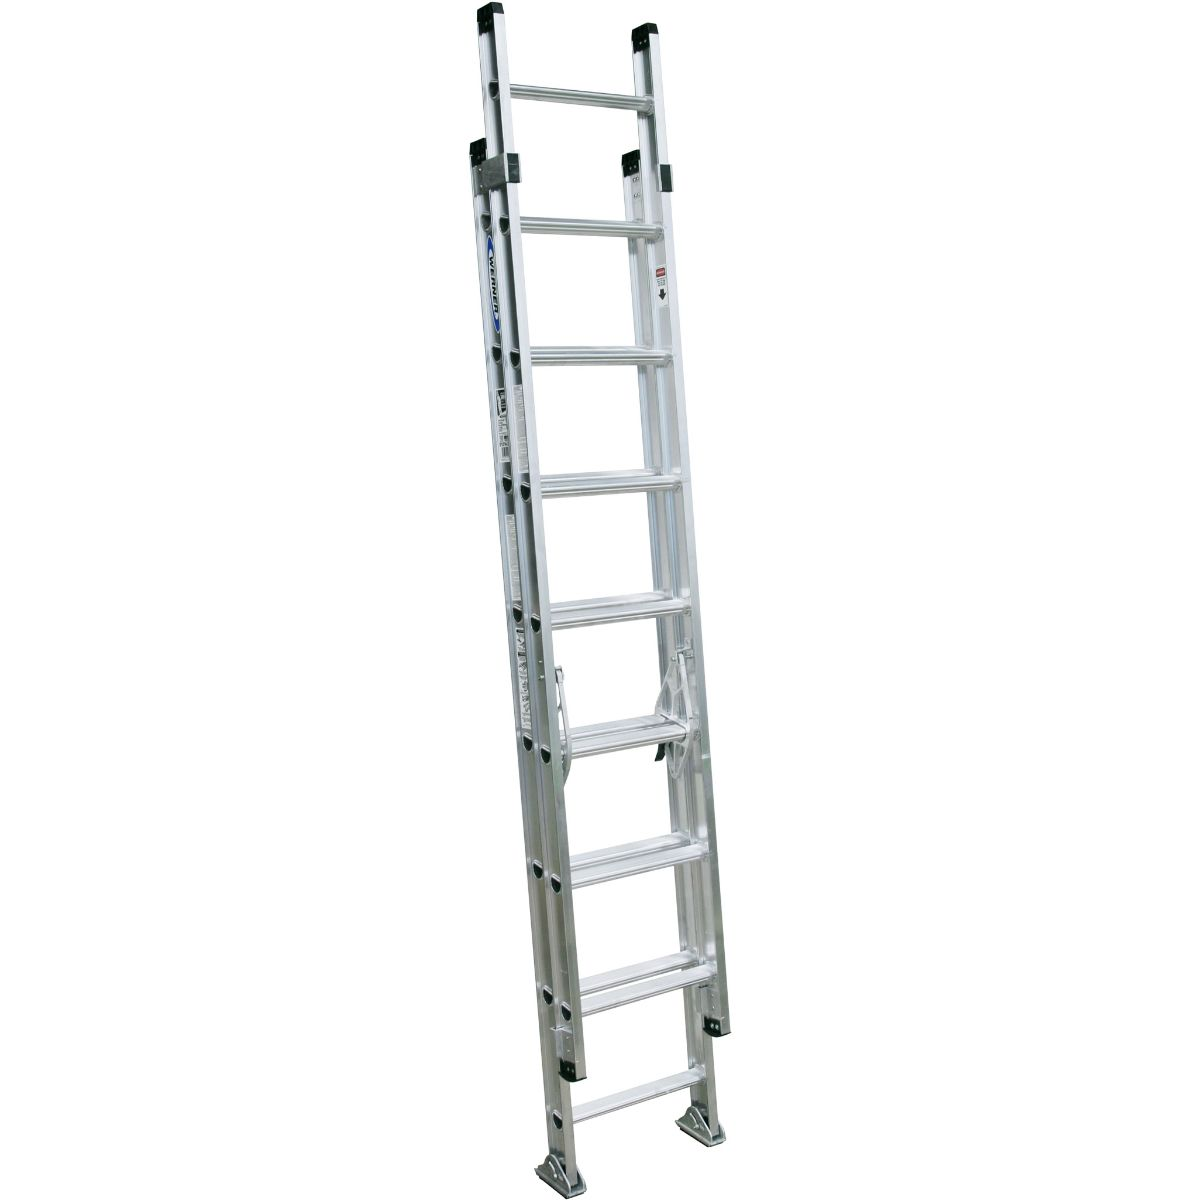 Werner D1500 2 Section Extension Ladder Aluminium